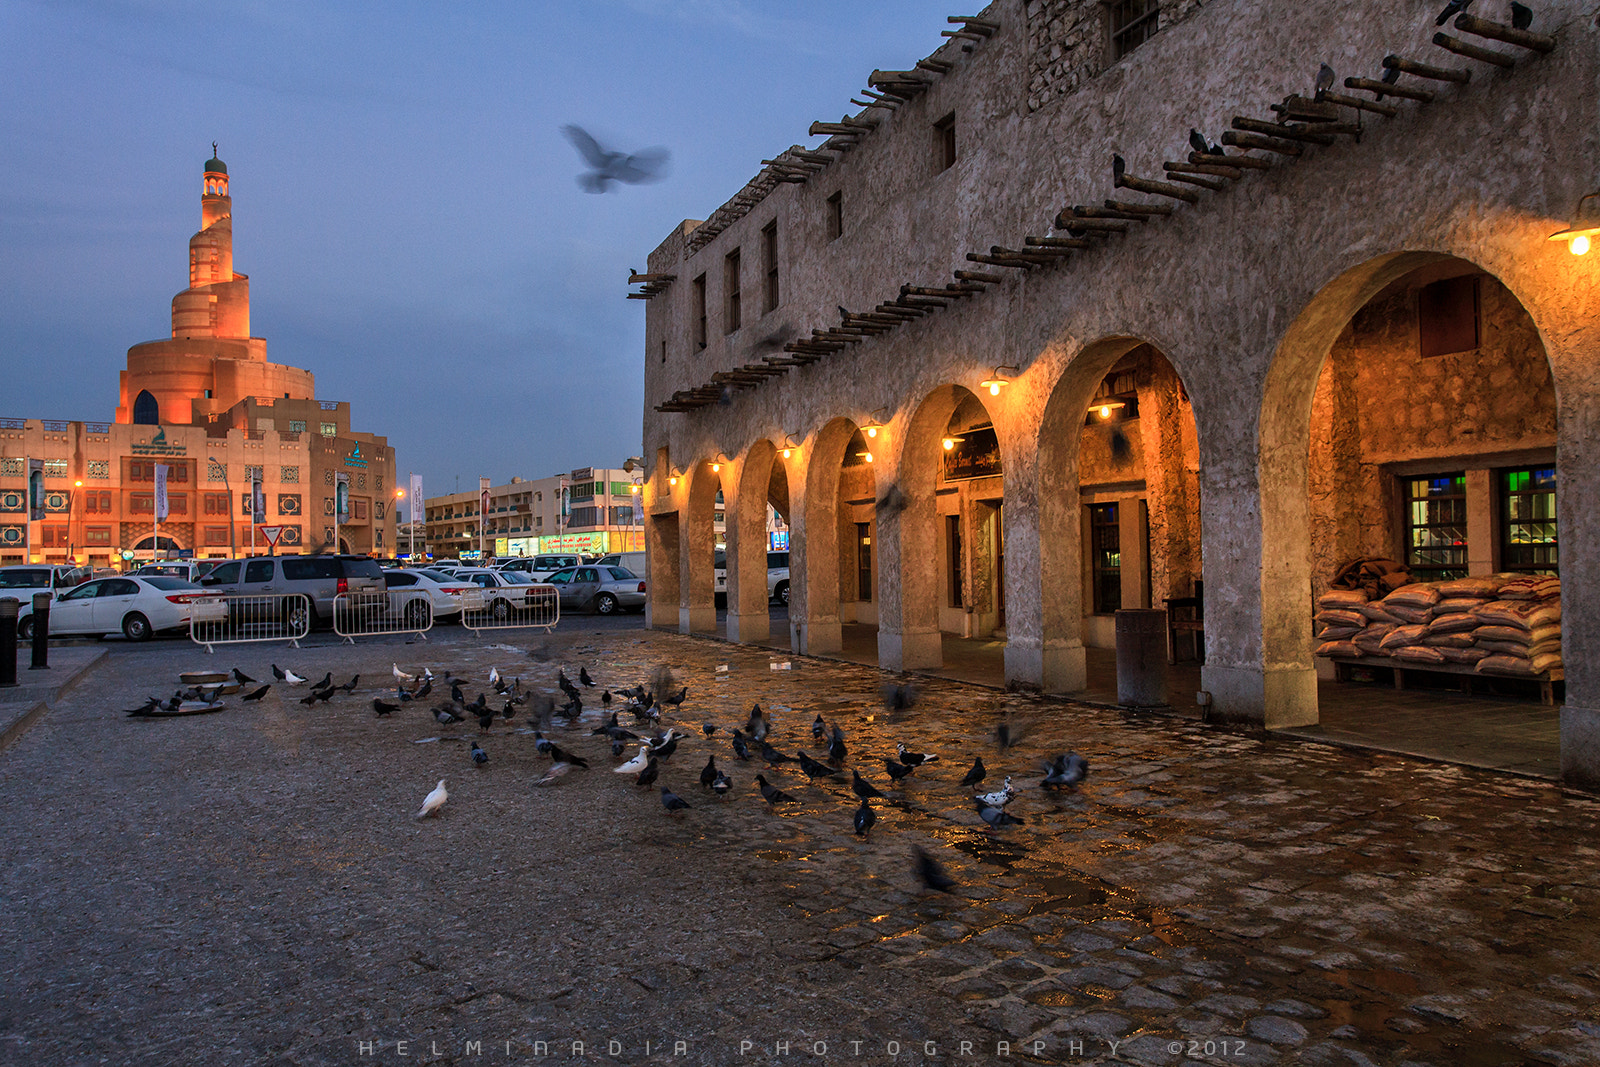 Photograph Souq Waqif,Qatar by Helminadia Ranford on 500px